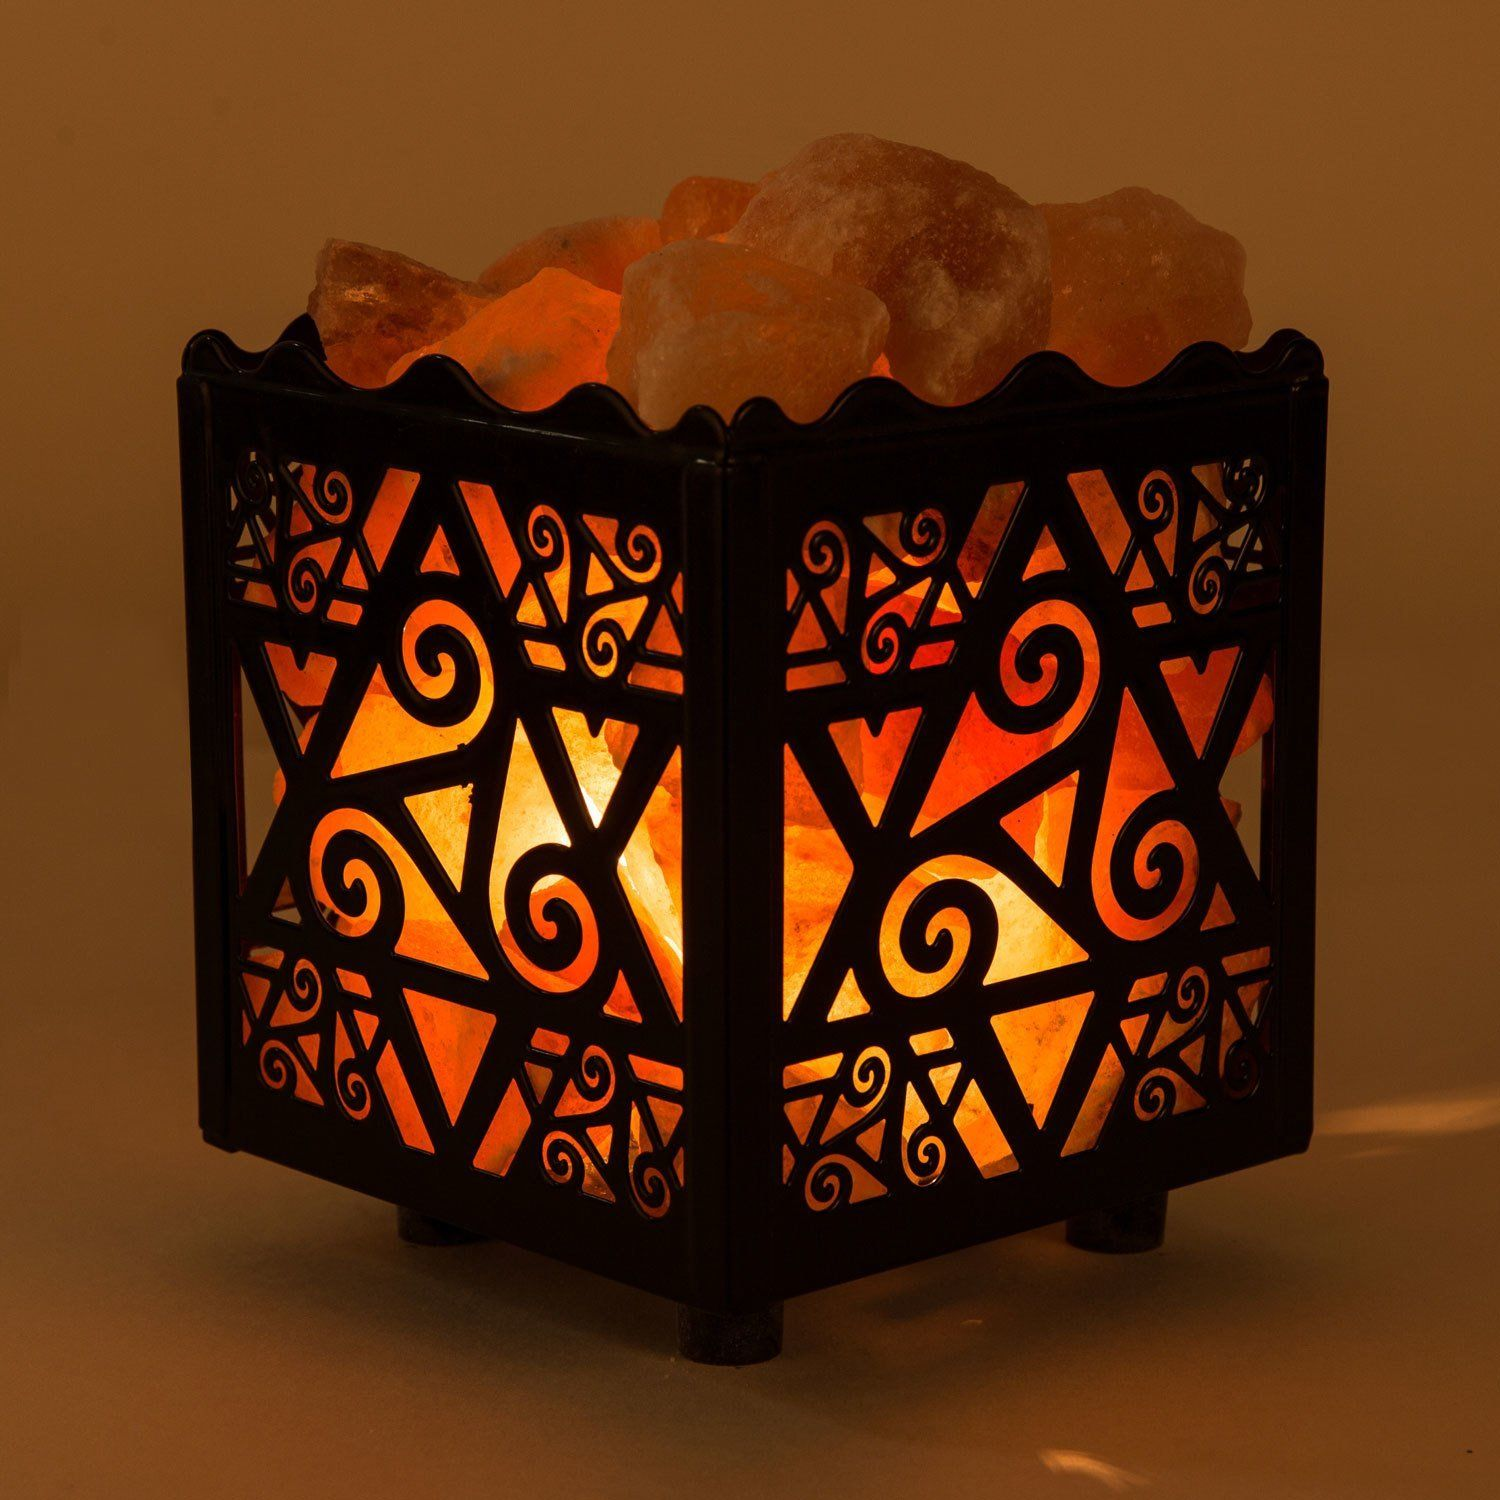 Crystal Decor Natural Himalayan Salt Lamp In Star Design Metal Basket With Dimmable Cord Natural Himalayan Salt Lamp Salt Lamp Pink Himalayan Salt Lamp